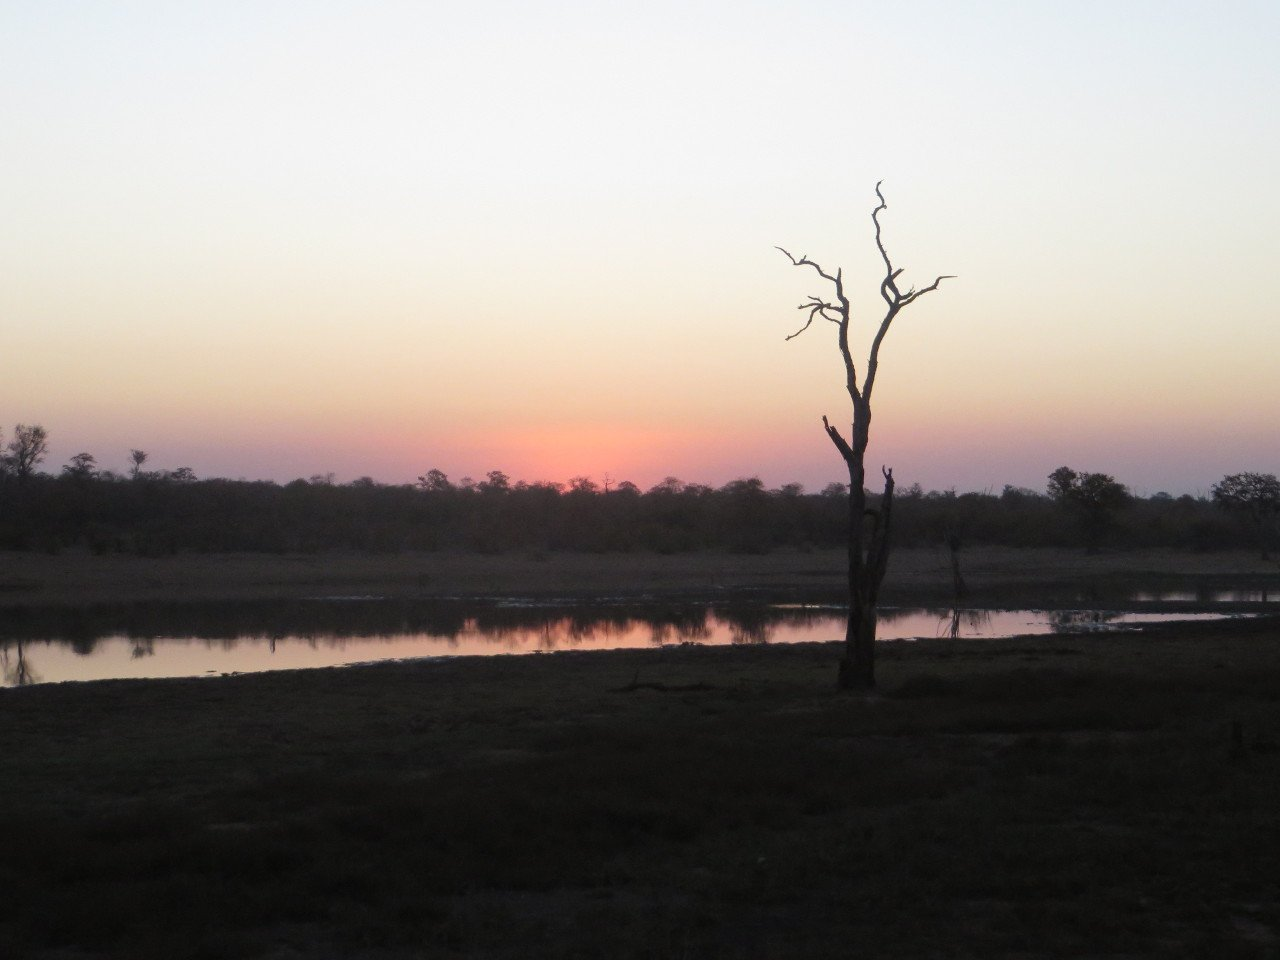 Sunset on the Savanna